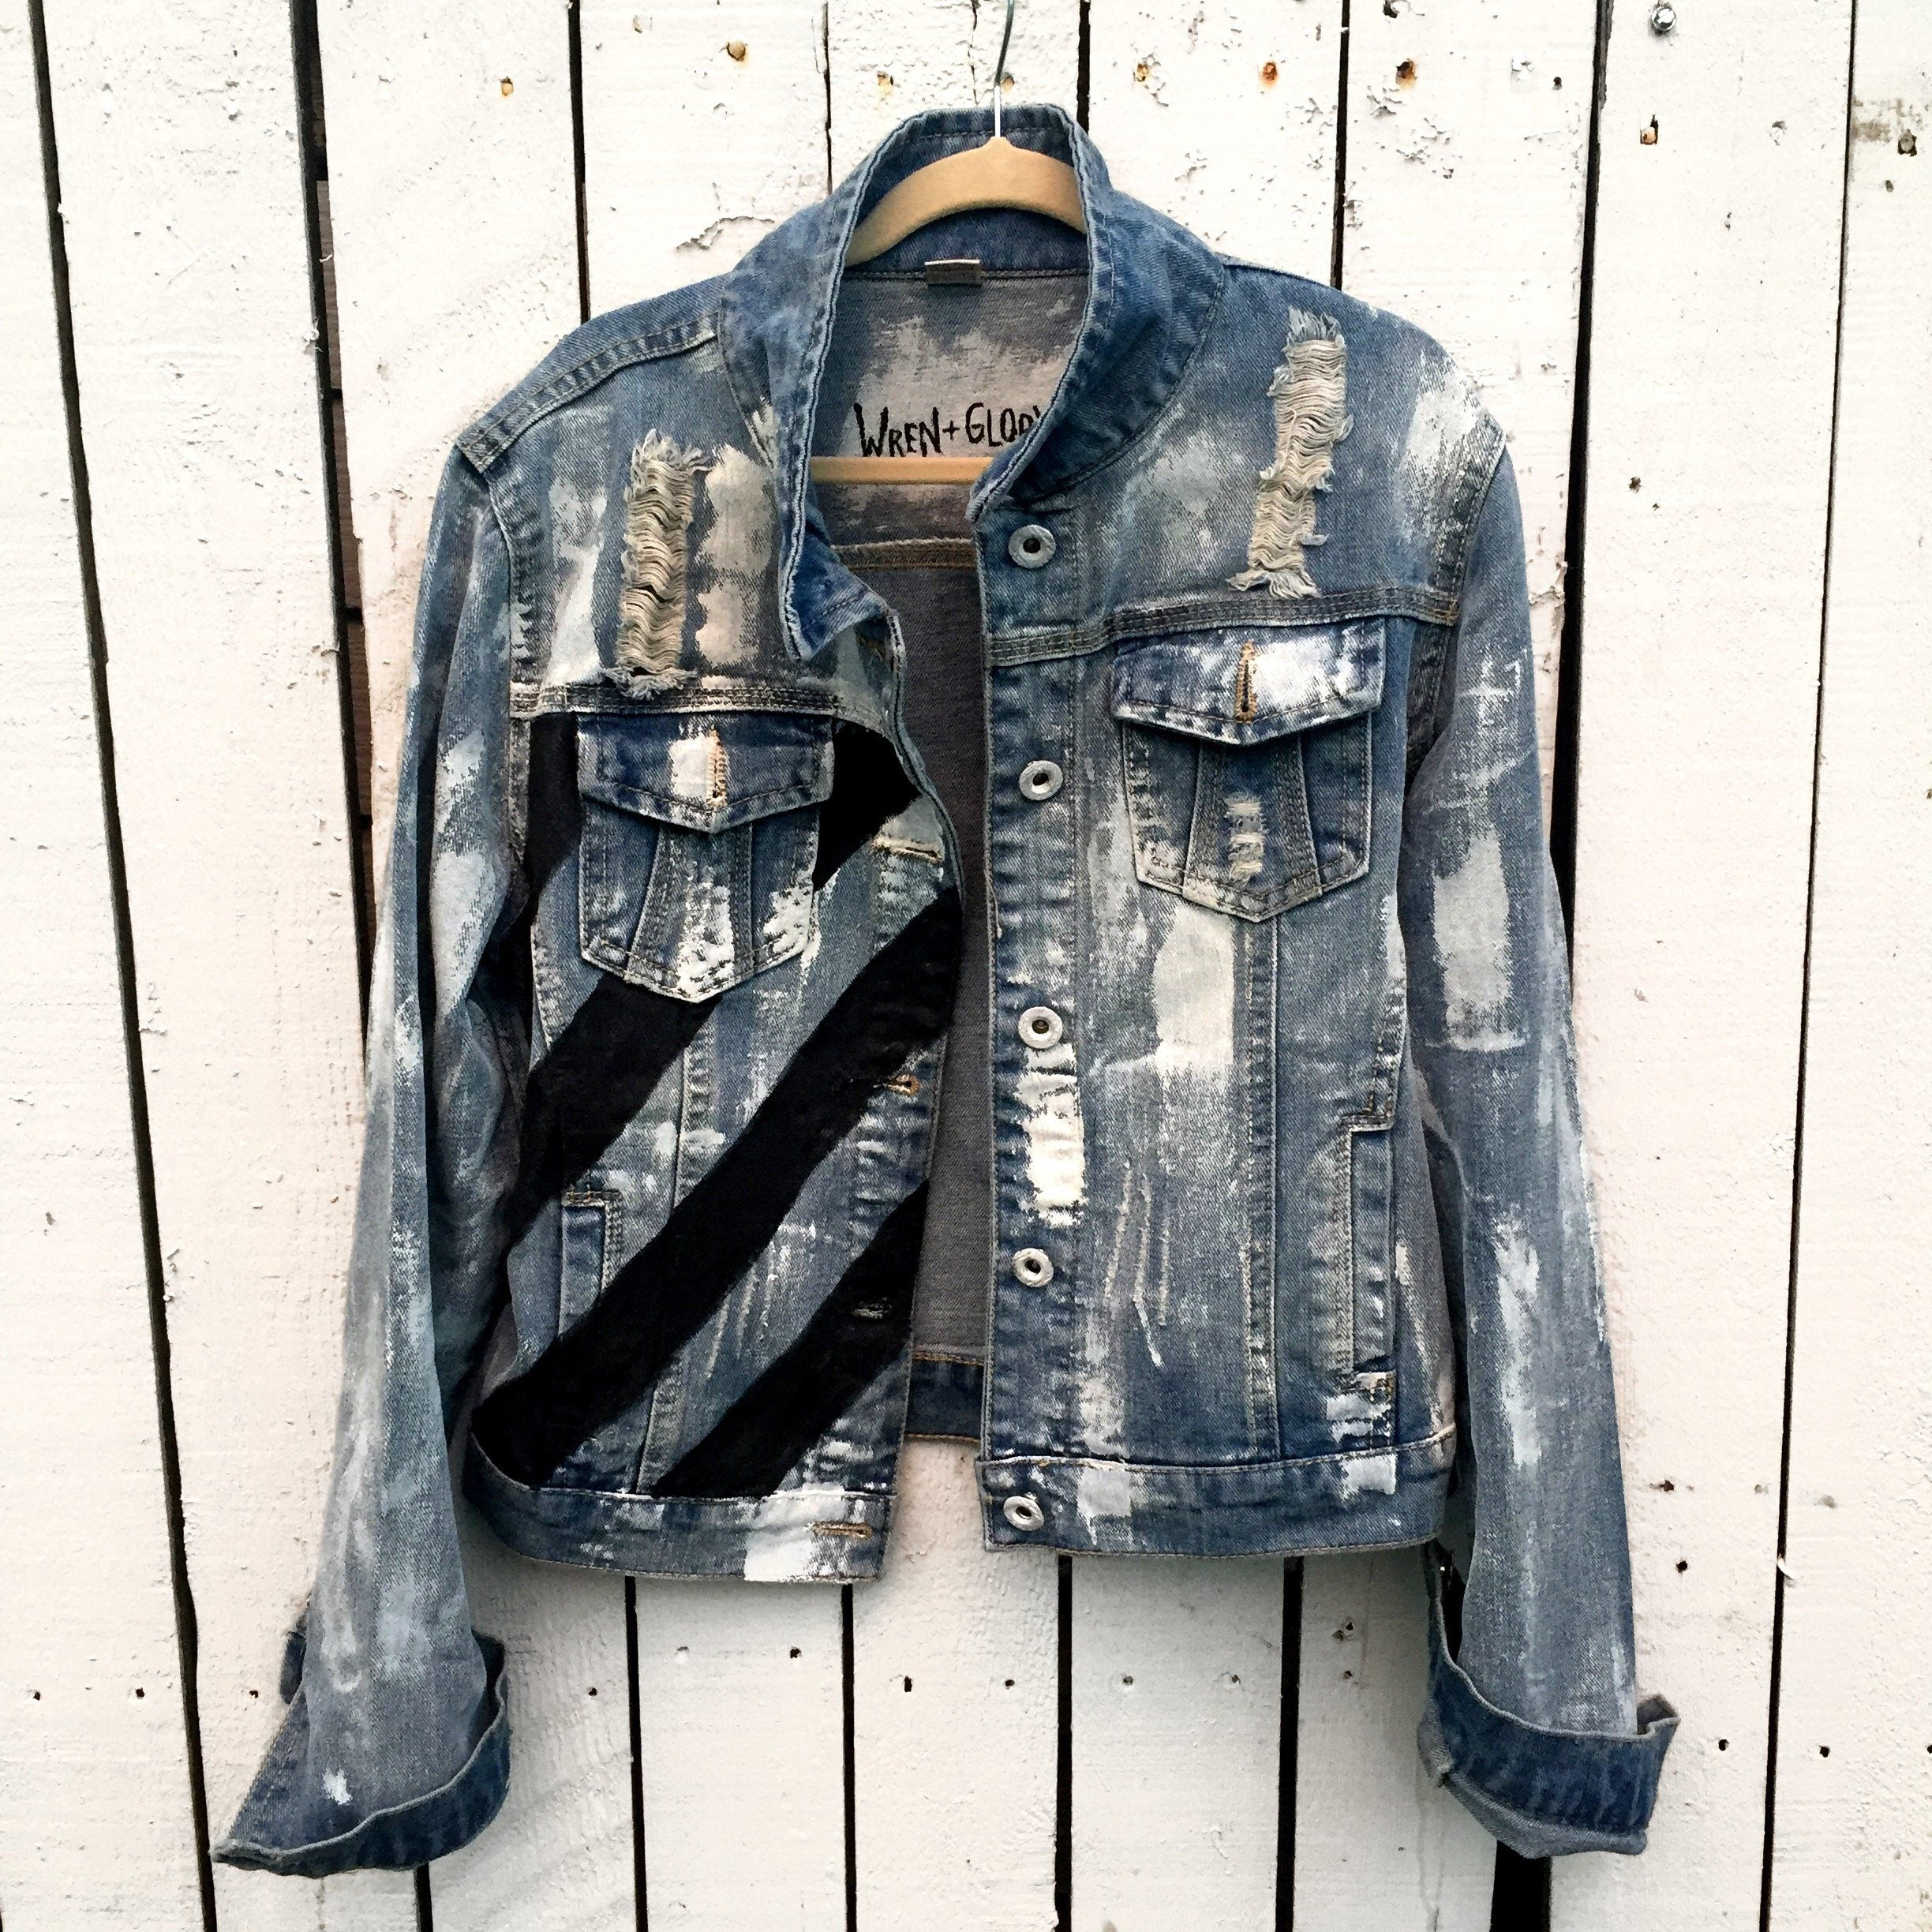 d900c9dd Powerful' Denim jacket - Wren + Glory